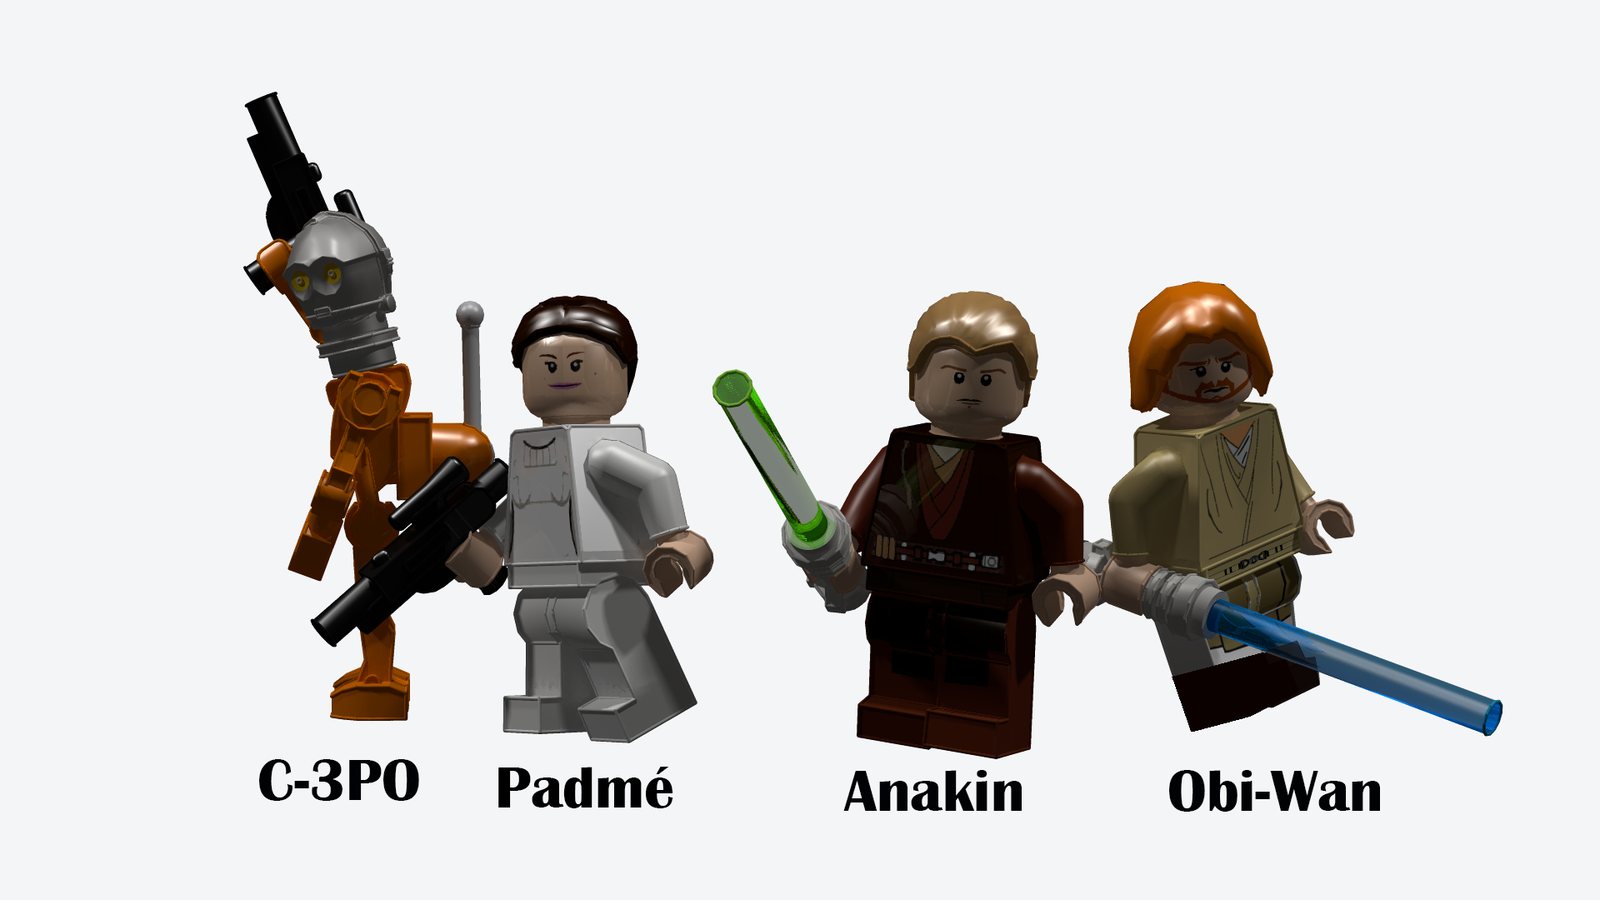 Related images of lego decals obi wan